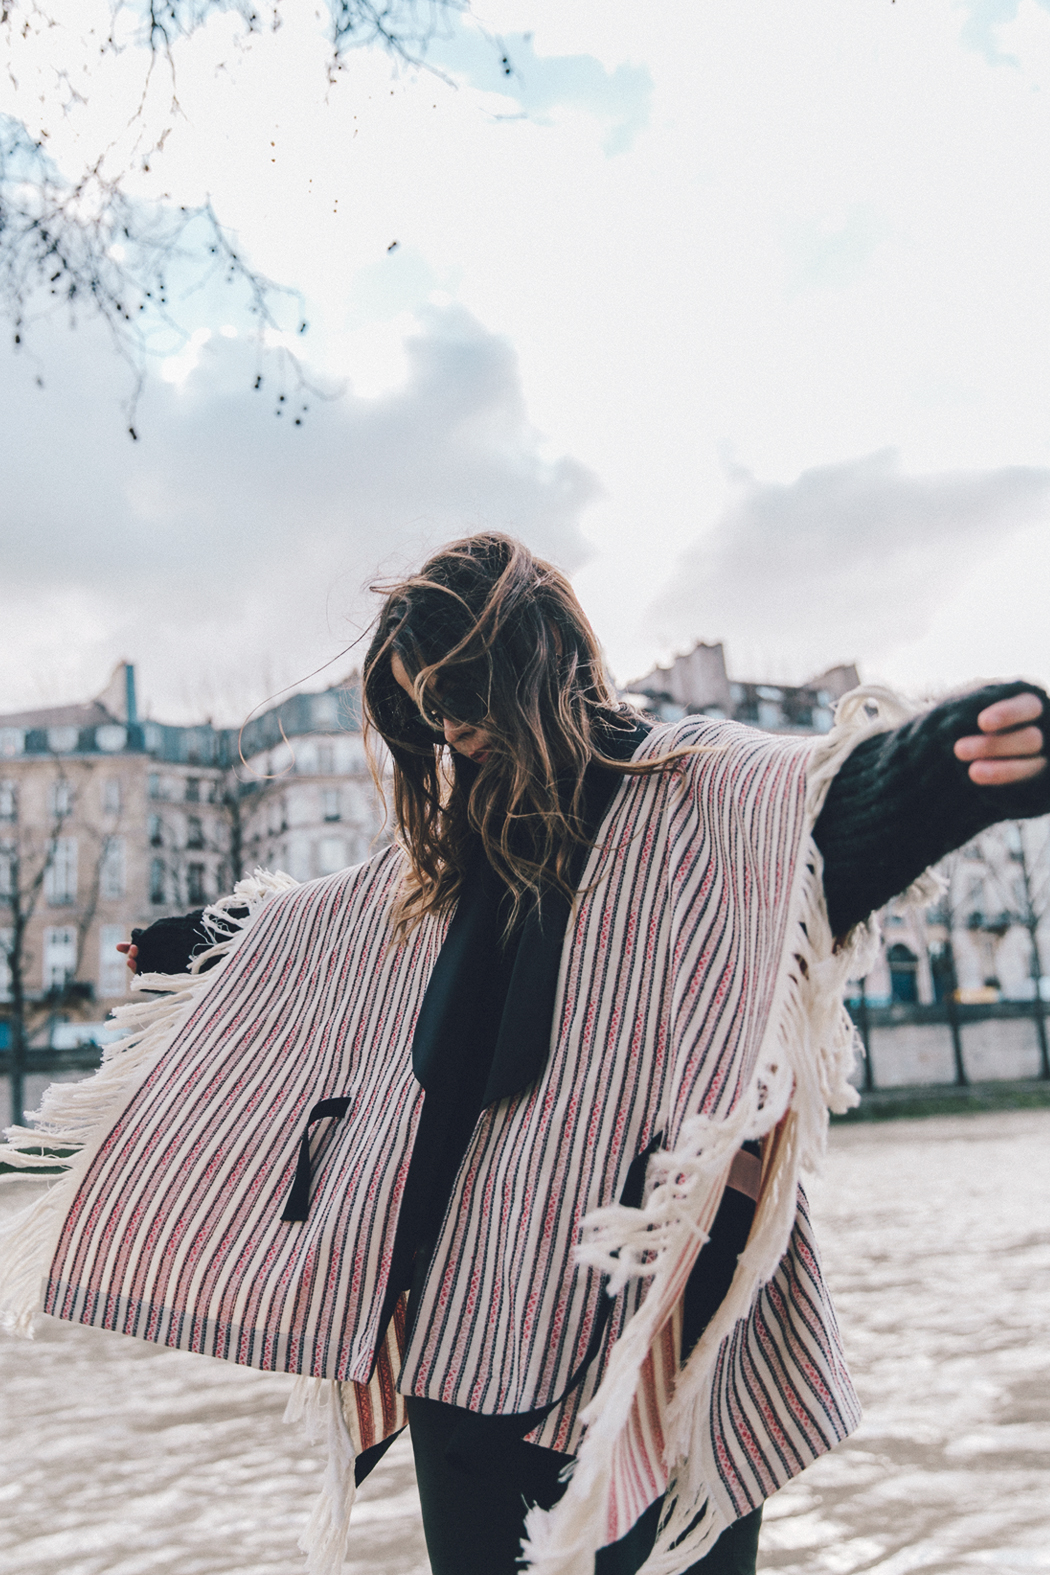 Collage_Vintage_Outfit-Maje_Exclusive-Poncho-Striped-Black-Celine_Boots-Street_Style-PFW-45